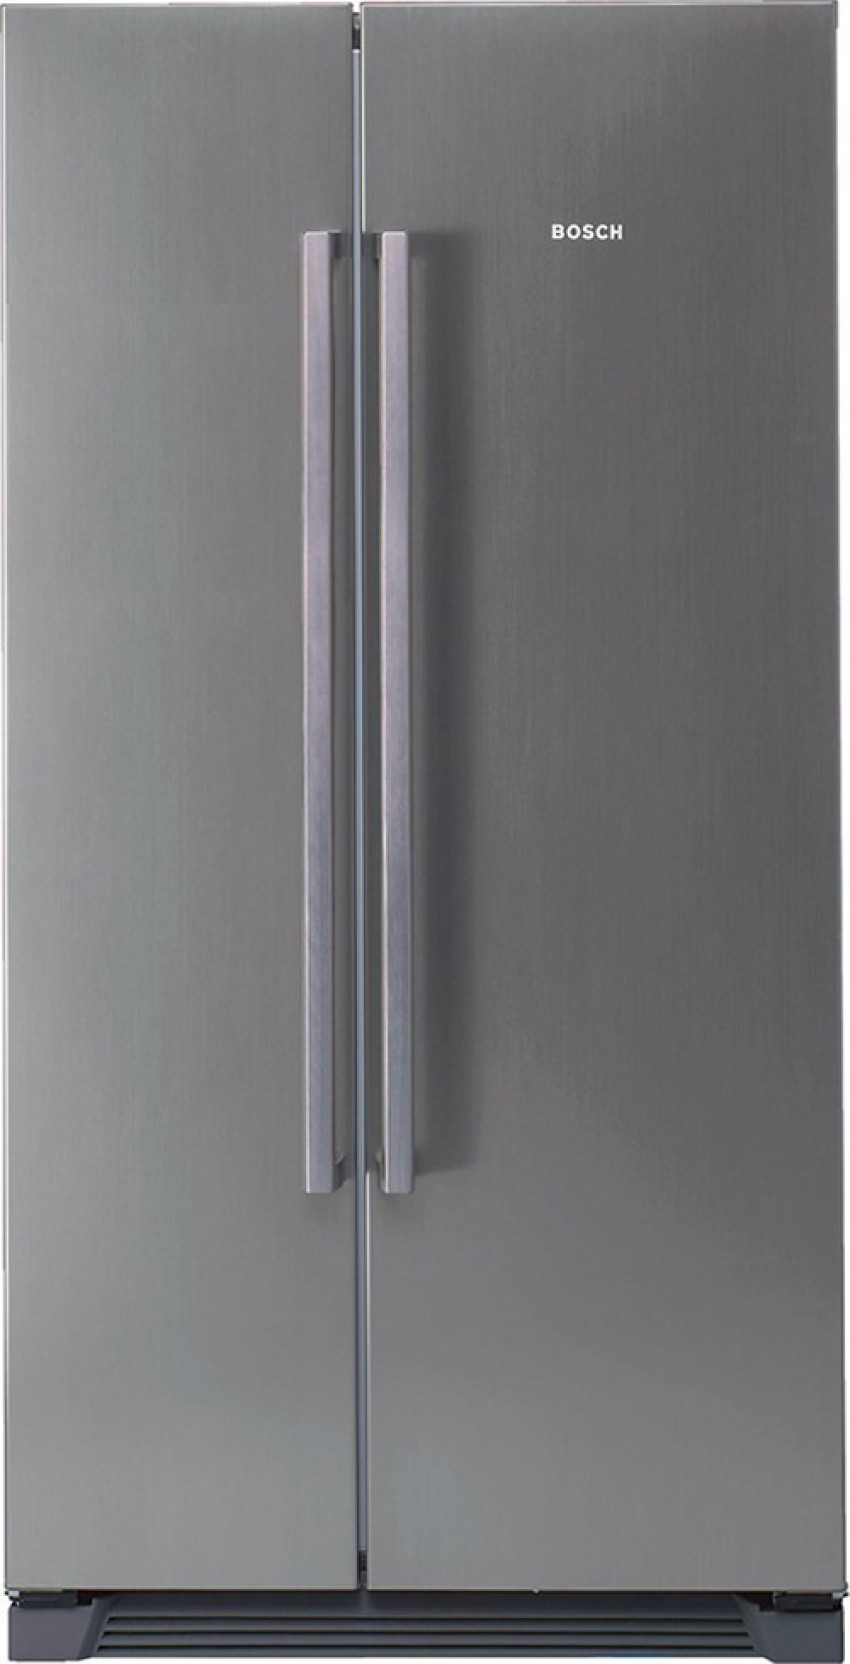 Bosch 618 L Frost Free Side by Side Refrigerator. ADD TO CART